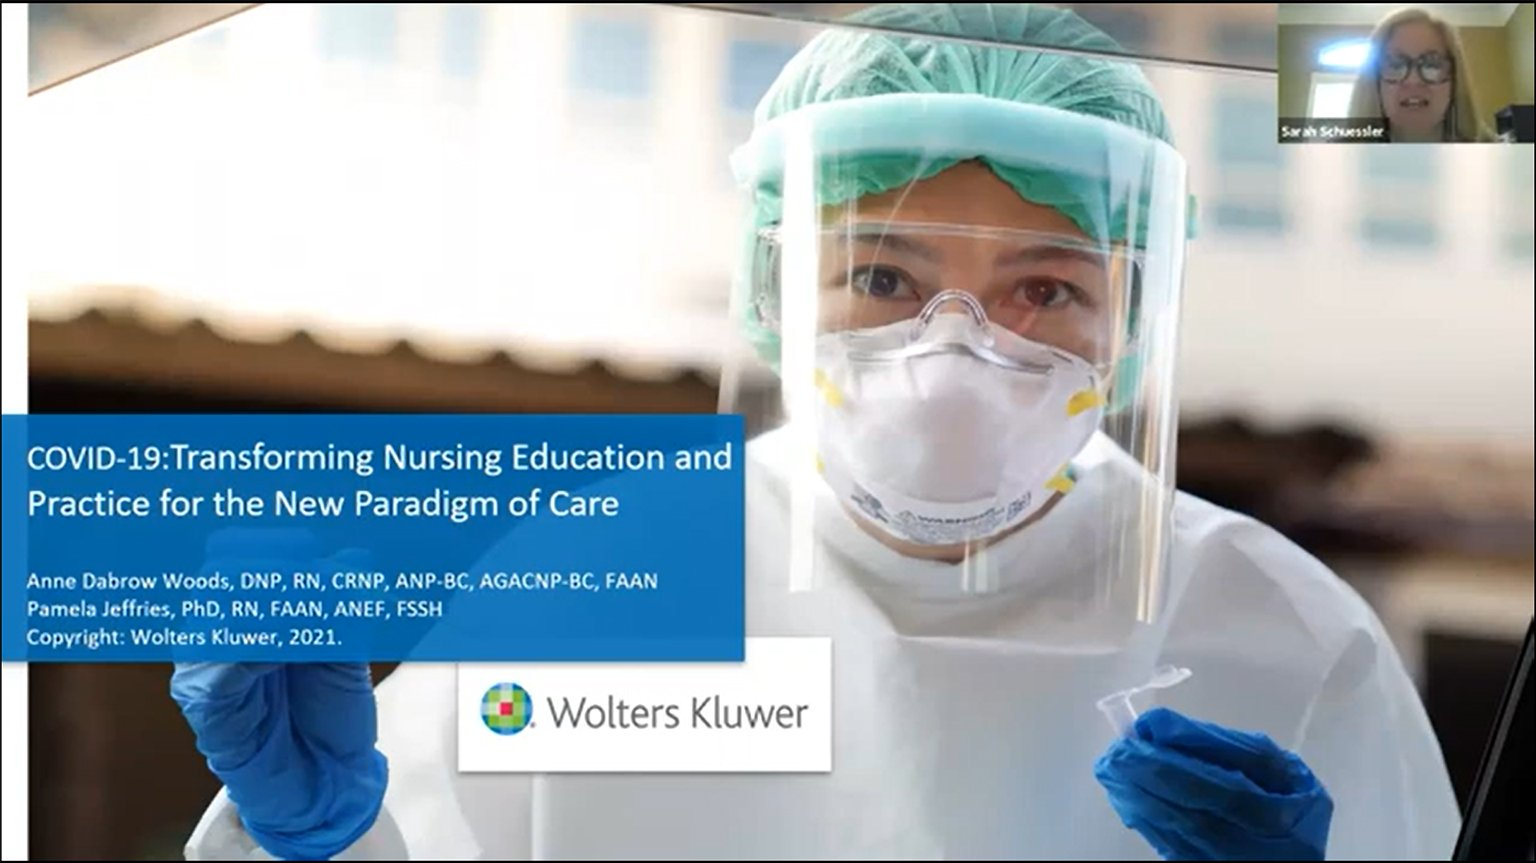 Screenshot of COVID-19: Transforming nursing education and practice for the new paradigm of care video